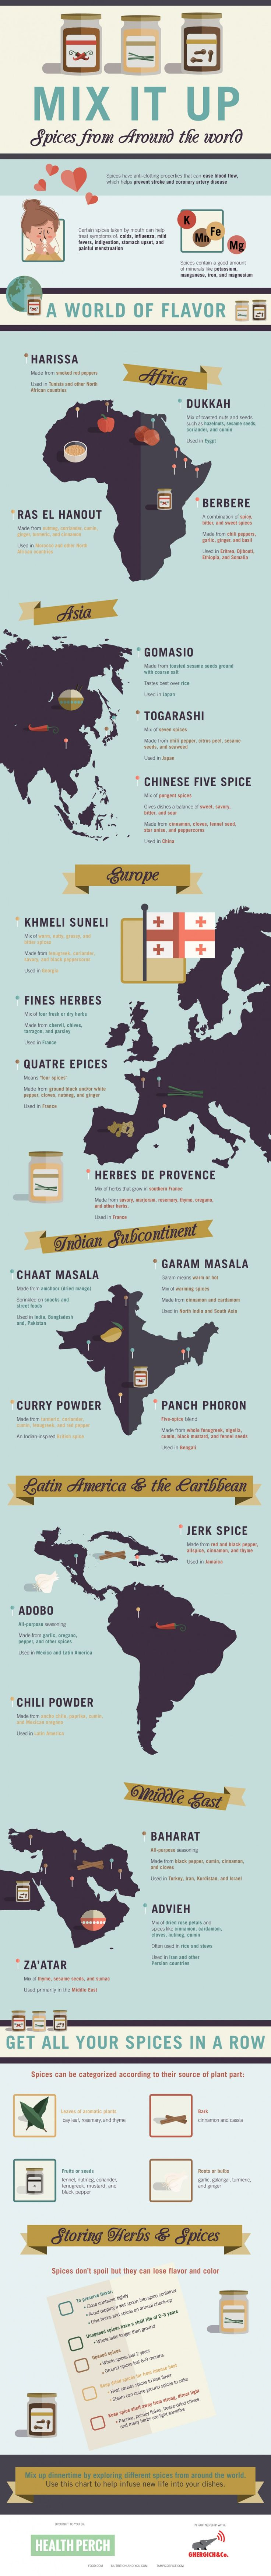 Today is hard to imagine a good meal without spices, whether it is in an everyday home kitchen or in an exclusive restaurant. They give a true taste to the dishes and create a nice smell in the kitchen for a real culinary pleasure. With the addition of the right spices, the most simple dish can become even more attractive and beneficial to our organism. Check this nice infographic to learn more.